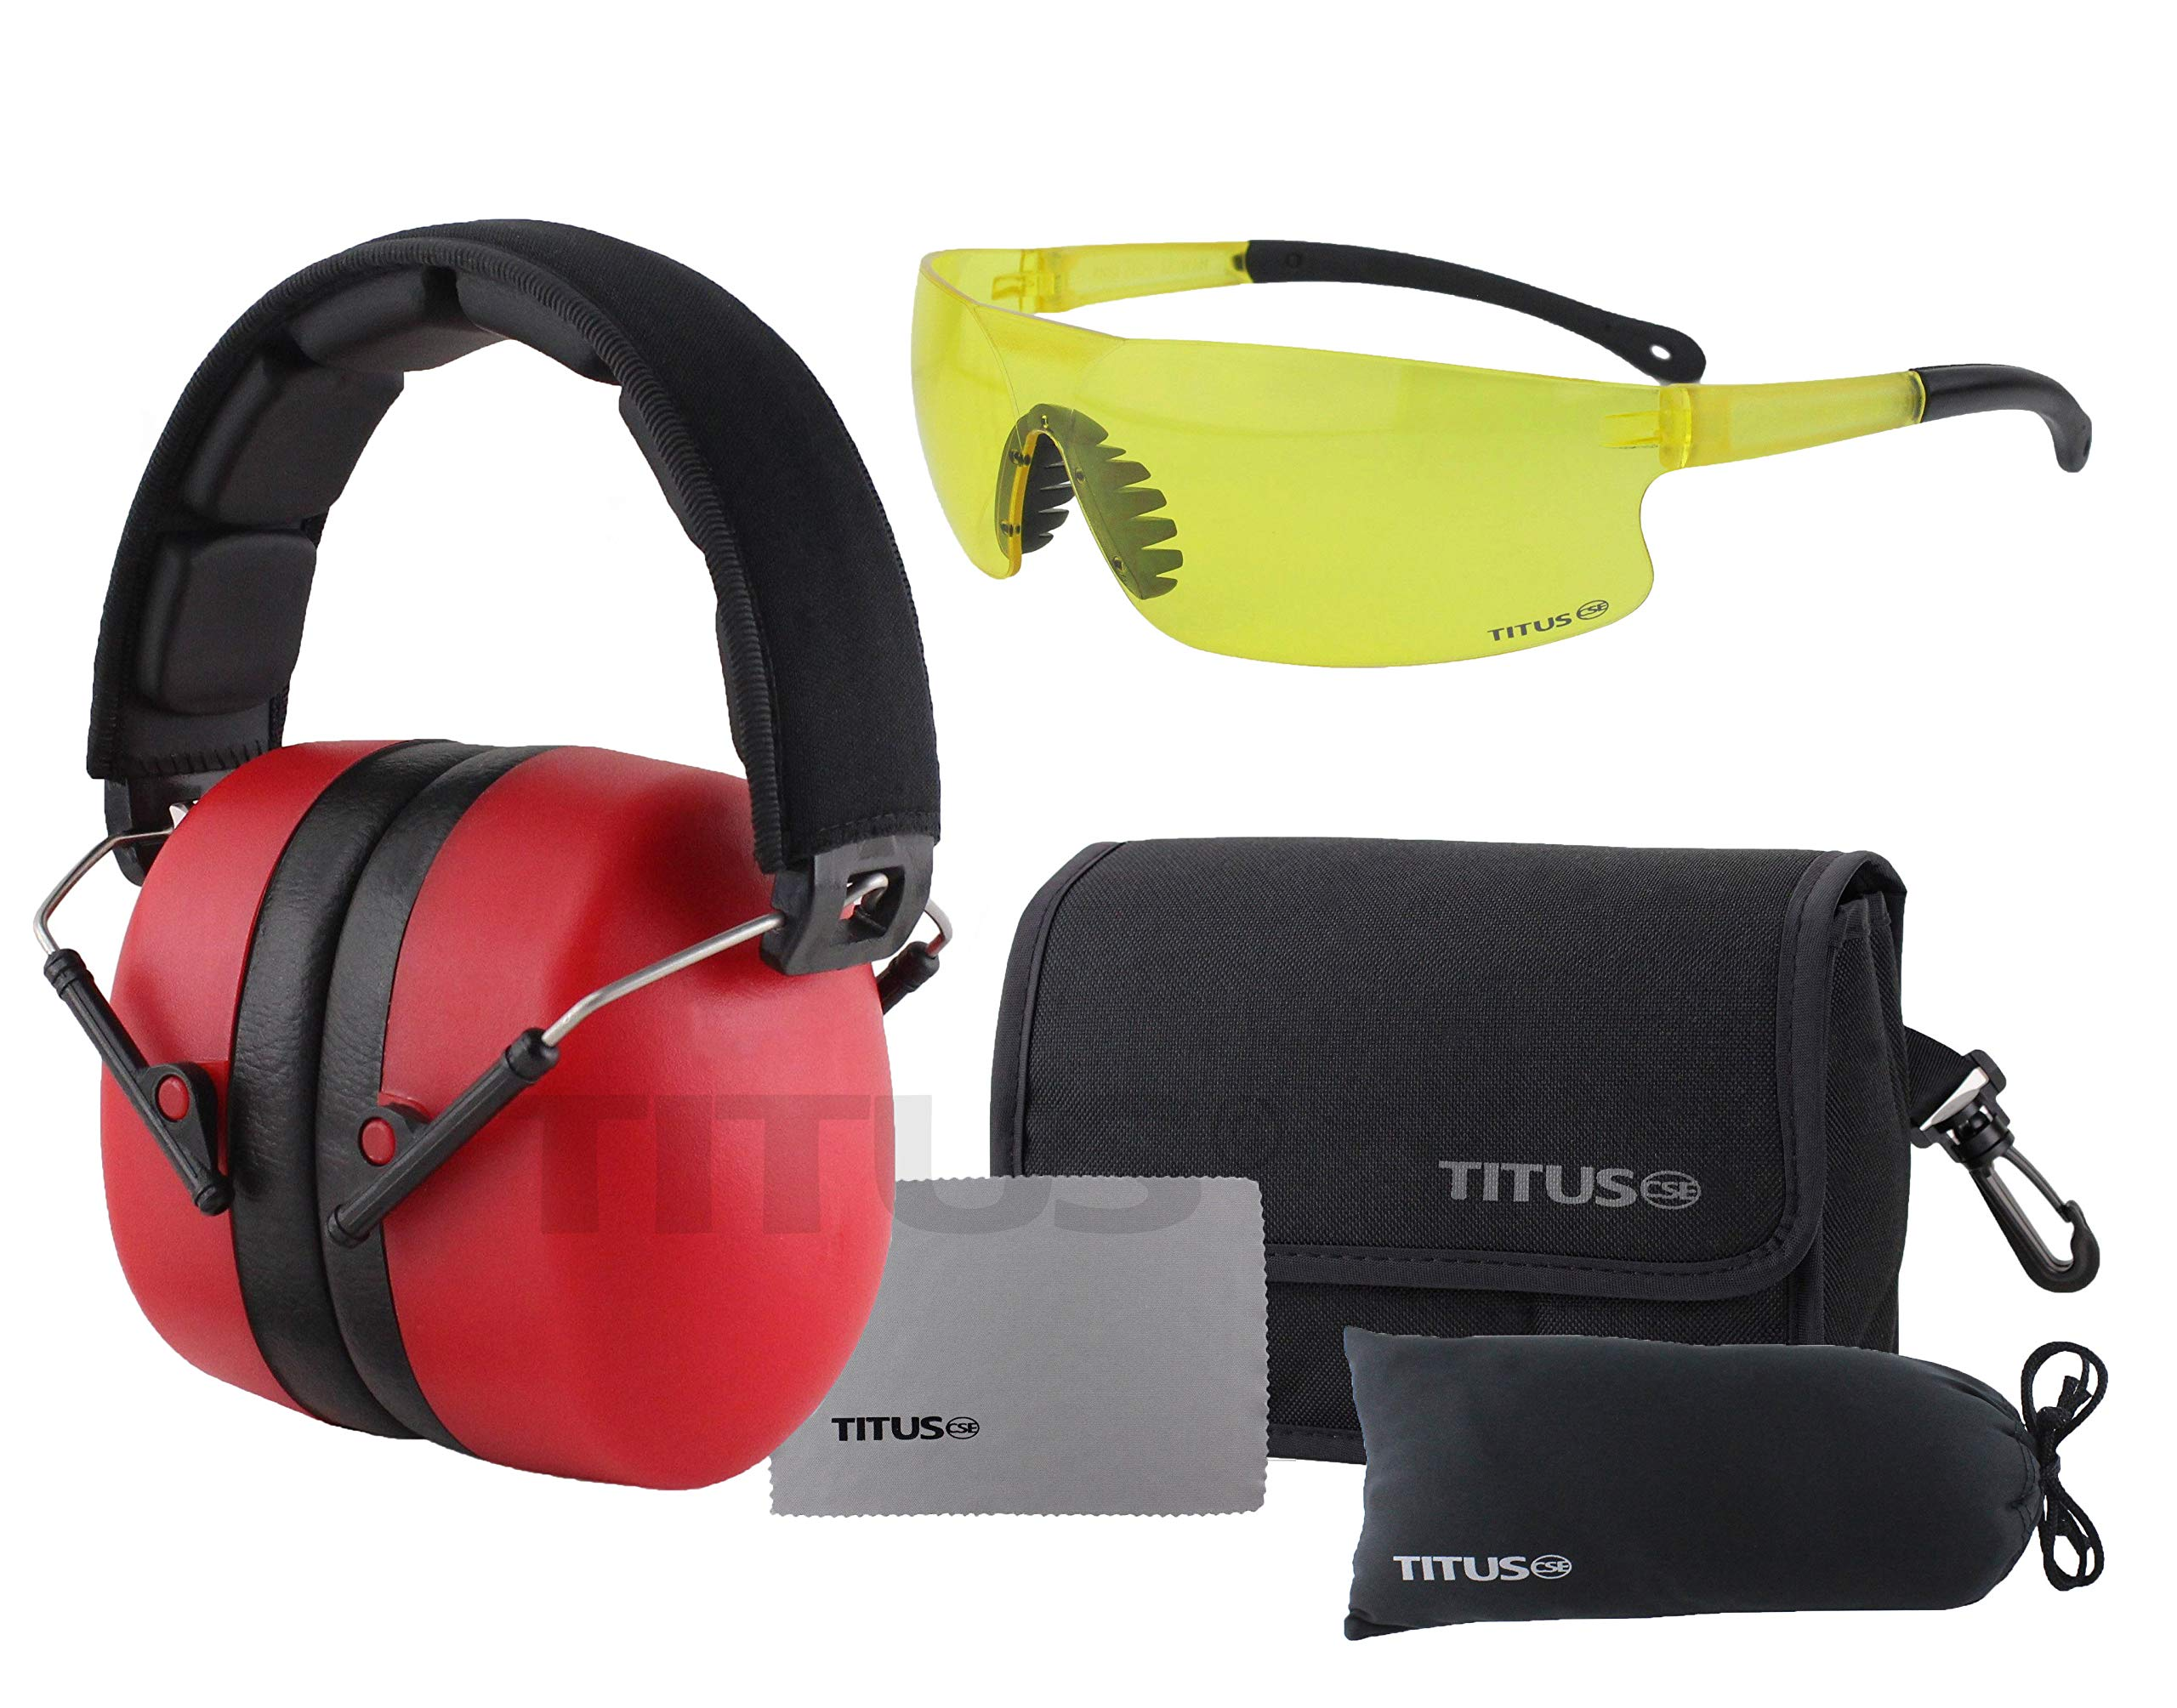 Titus 3 Series - 37 NRR Noise Reduction Hearing Protection & G45 Z87+ Safety Glasses Combos (Red, Yellow) by Titus